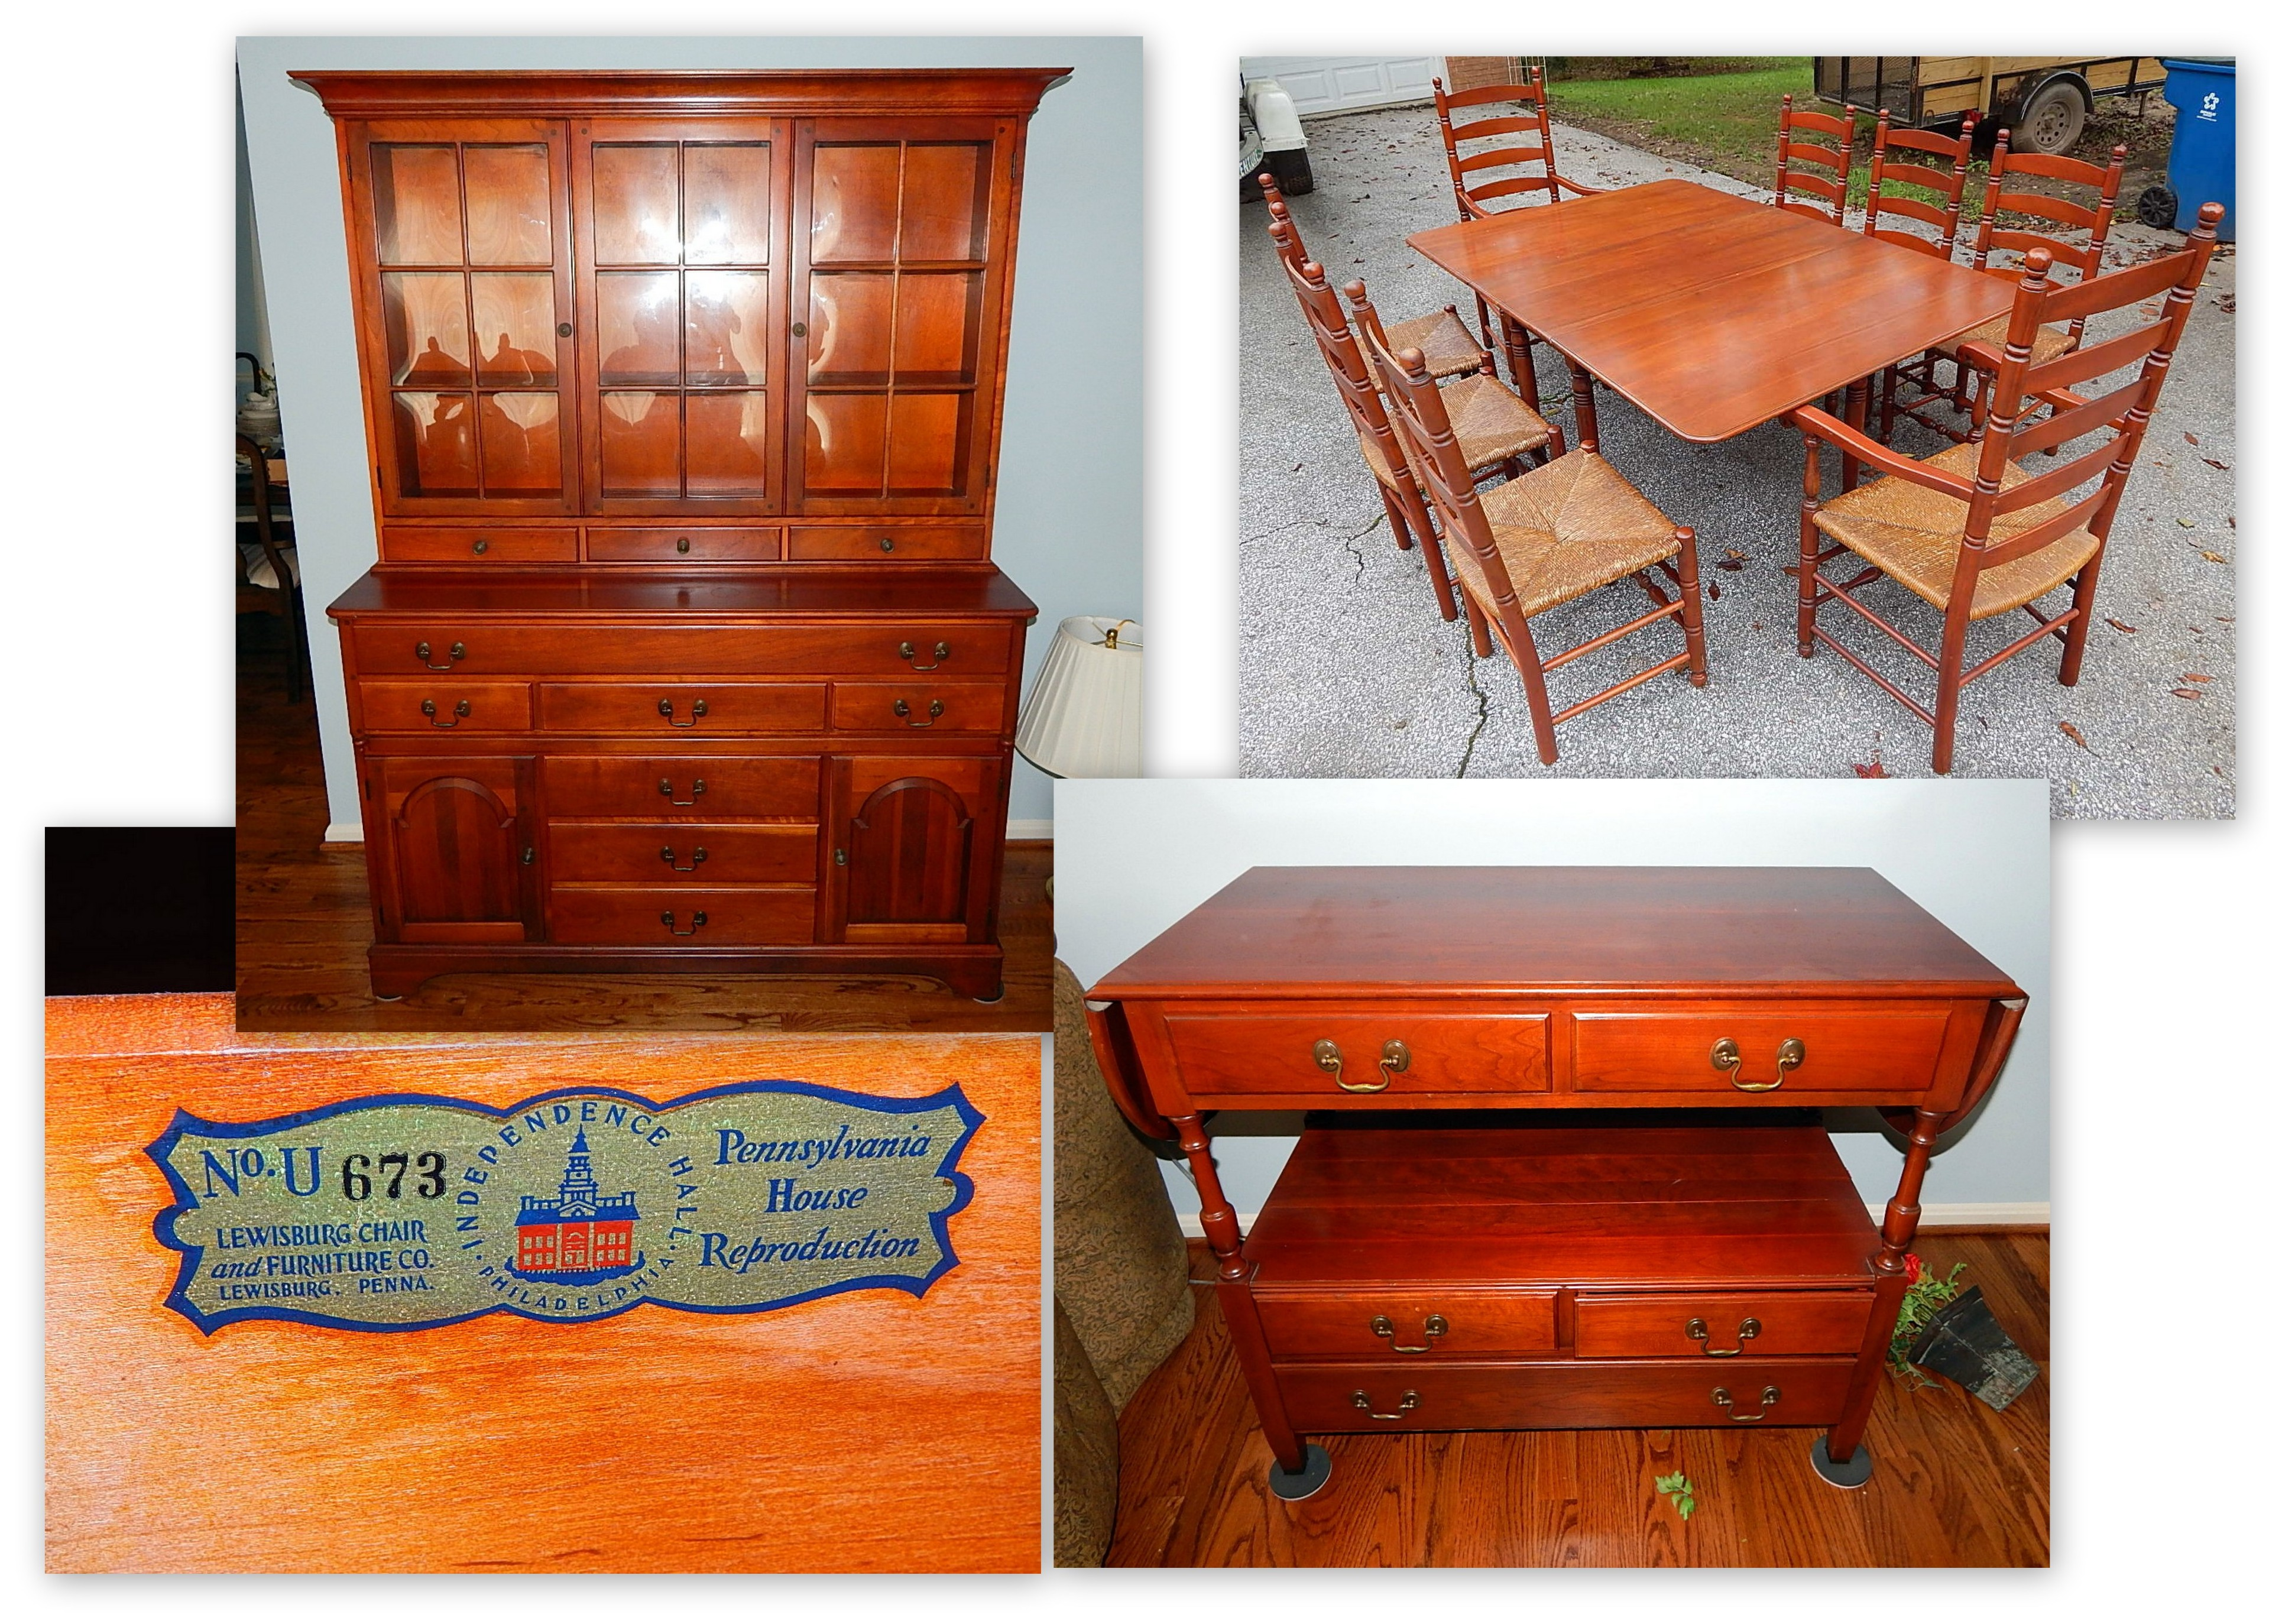 Pennsylvania House Cherry Chippendale Dining Room Set